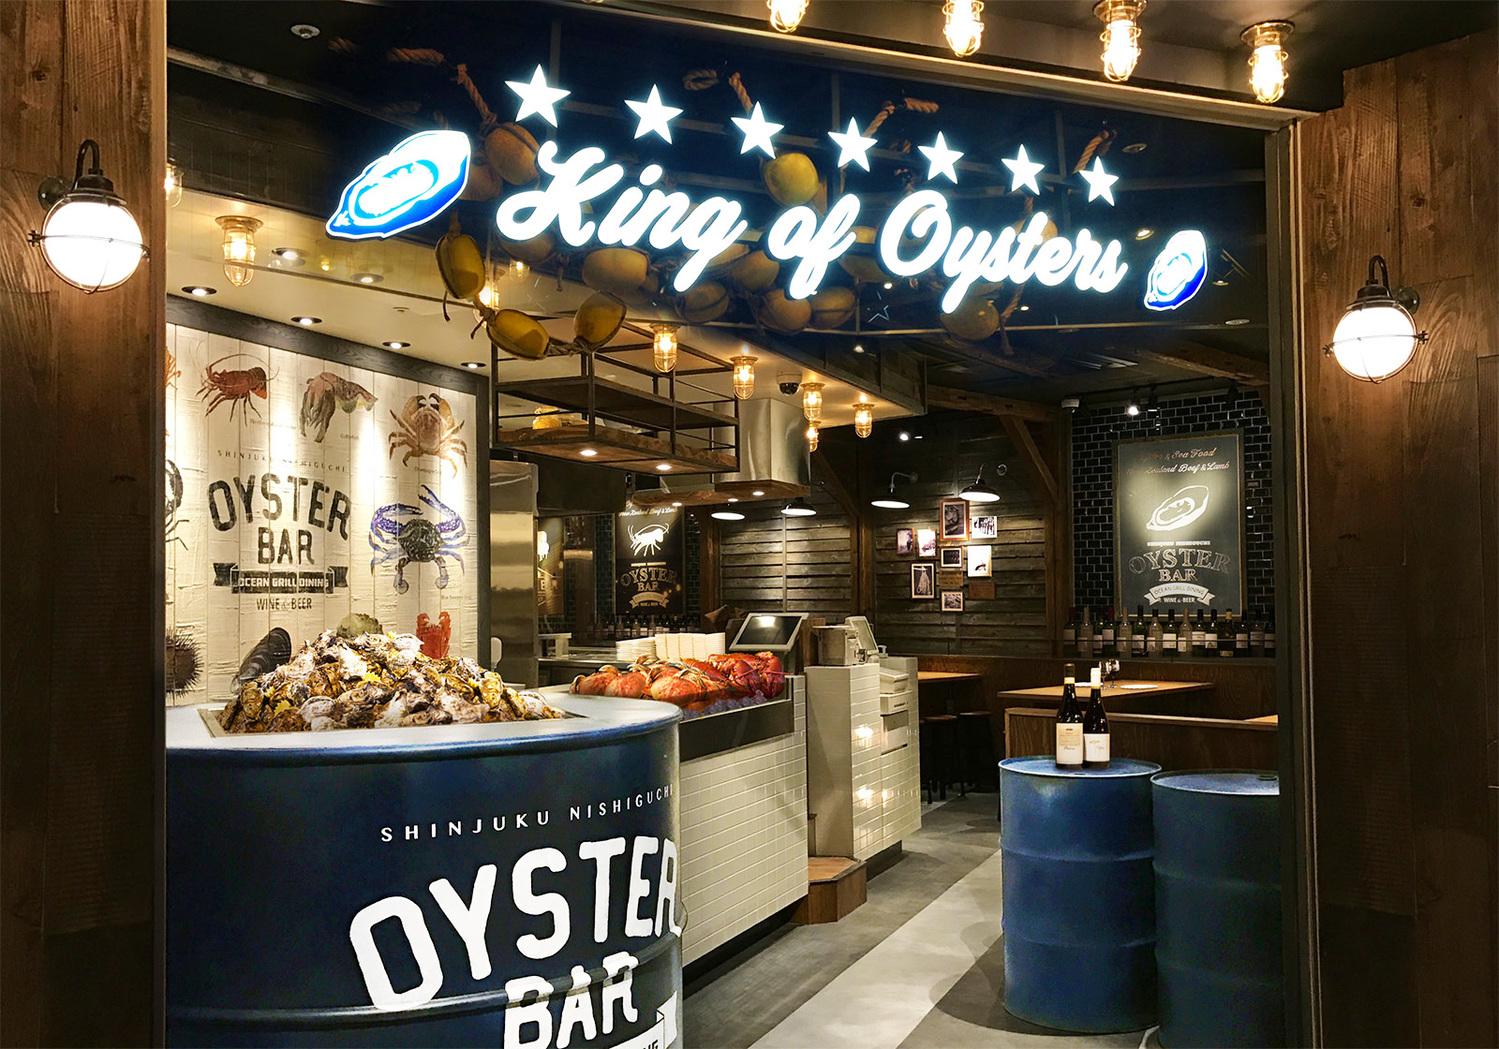 New Restaurant Brings The New York Oyster Bar Experience To